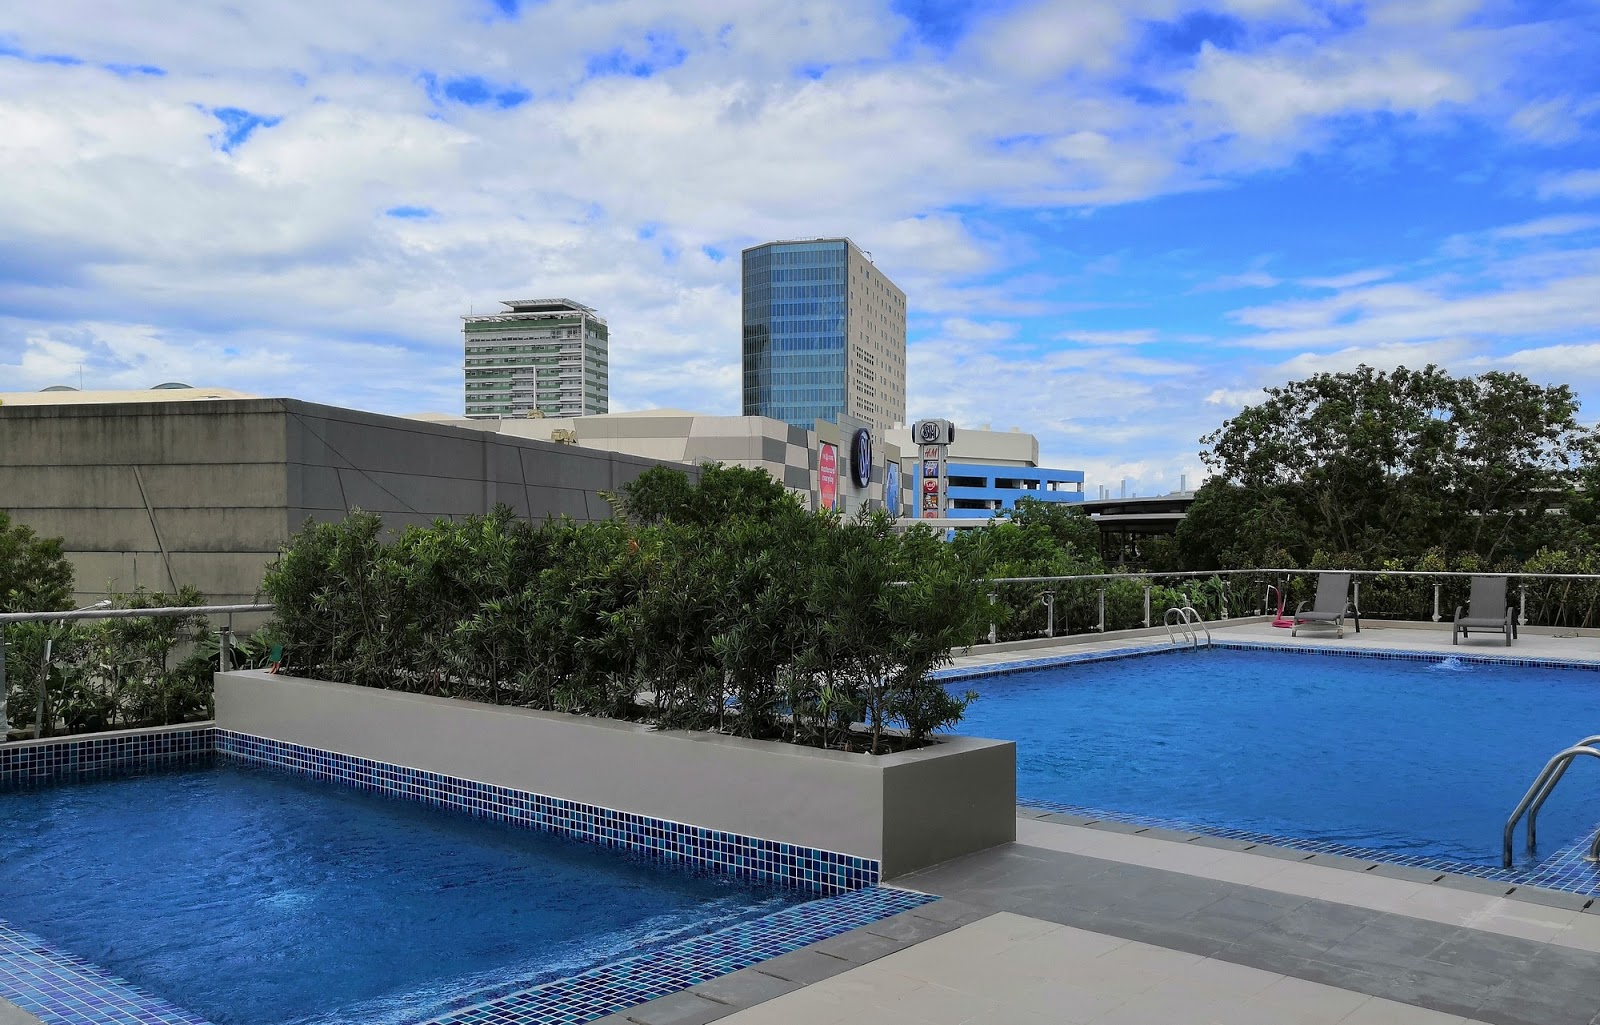 Swimming pool for adults and kids at Park Inn Iloilo.